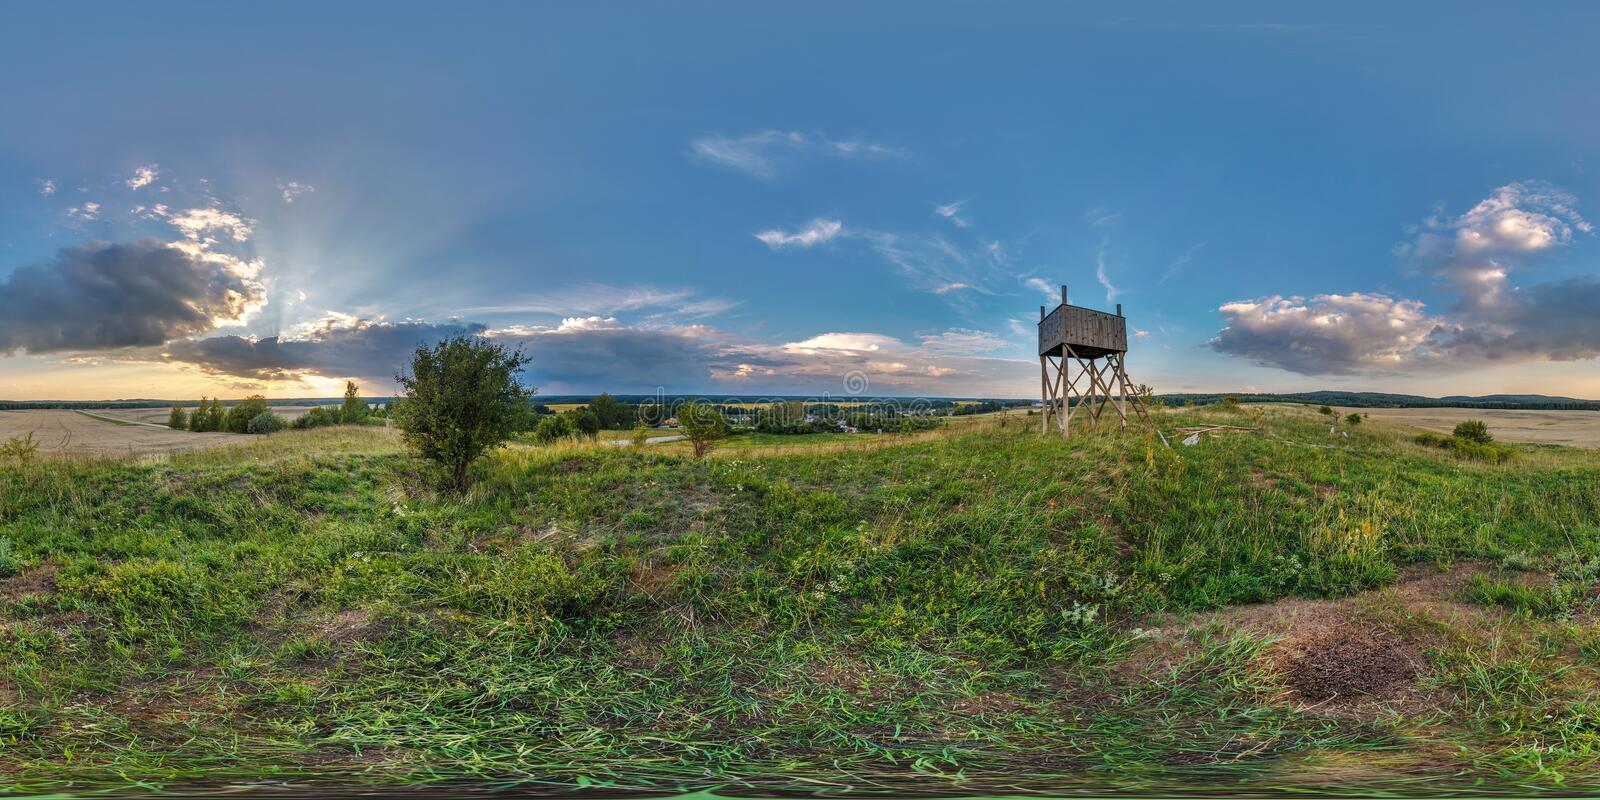 Full seamless spherical panorama 360 by 180 degrees angle view on a high visibility mountain next to the old wooden fire tower in stock photos